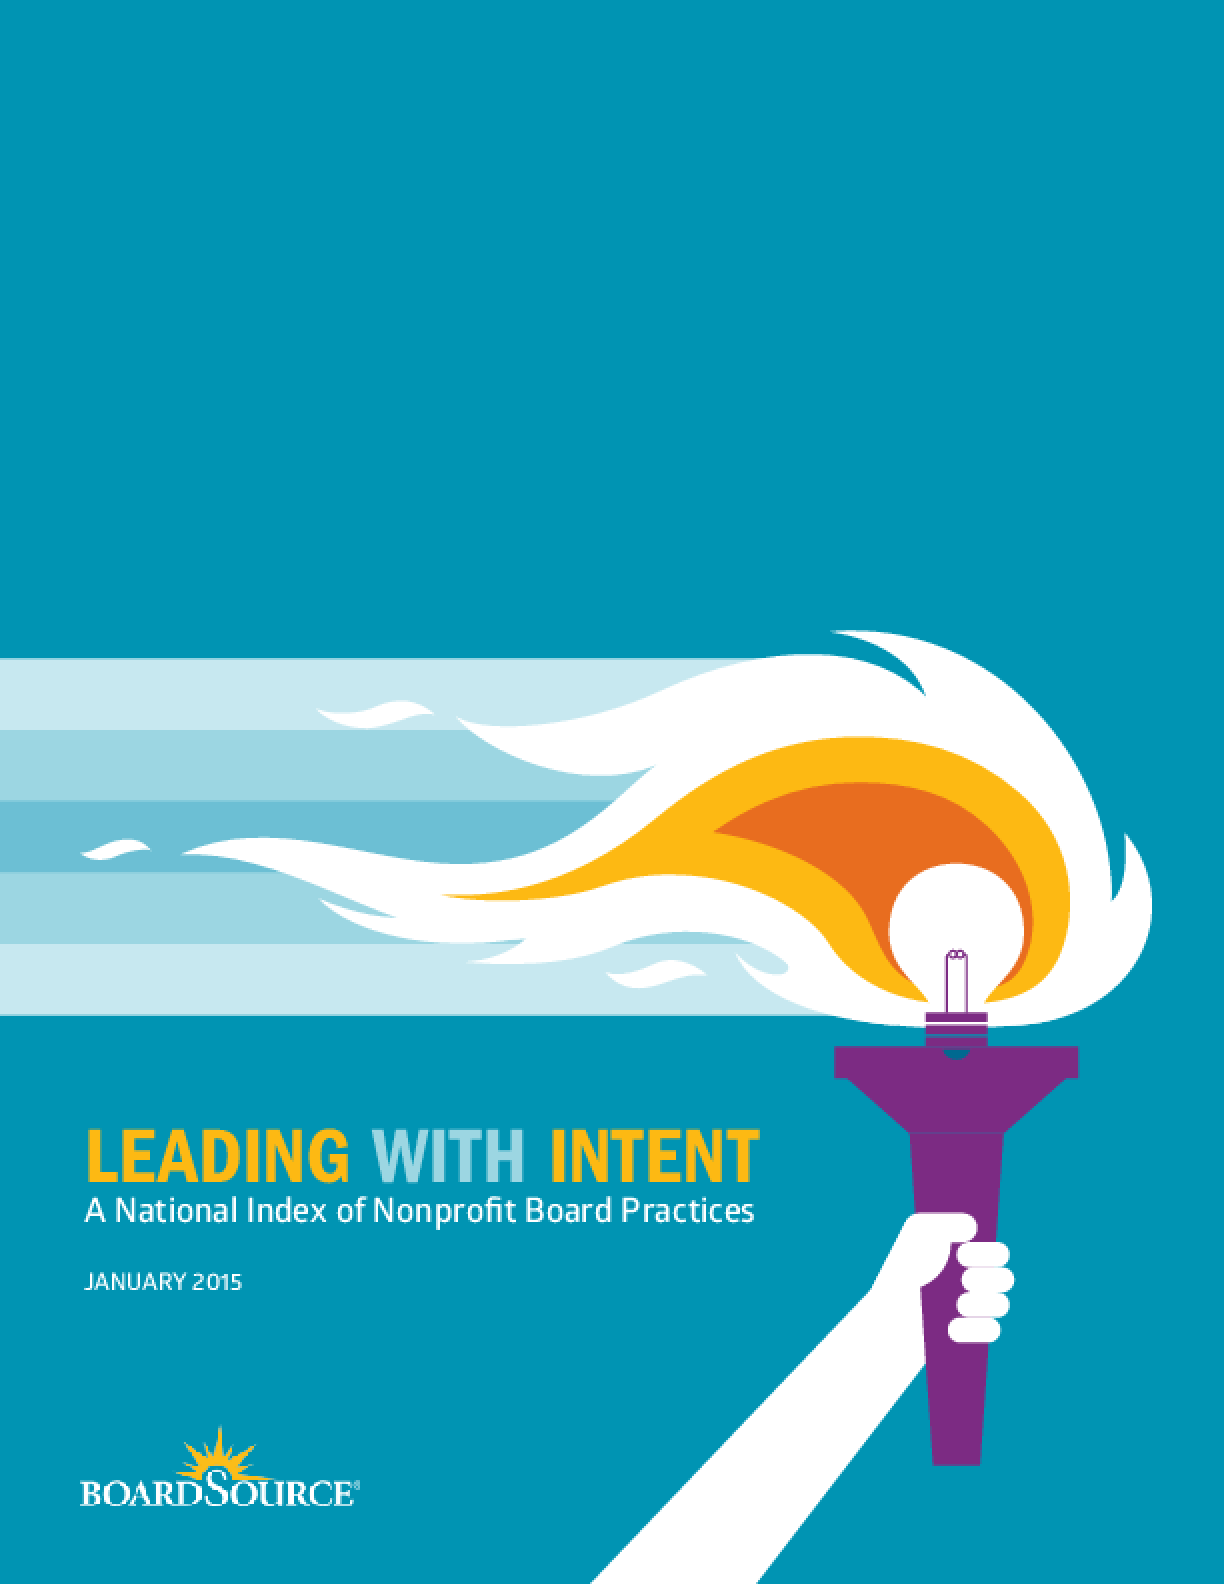 Leading With Intent: A National Index of Nonprofit Board Practices